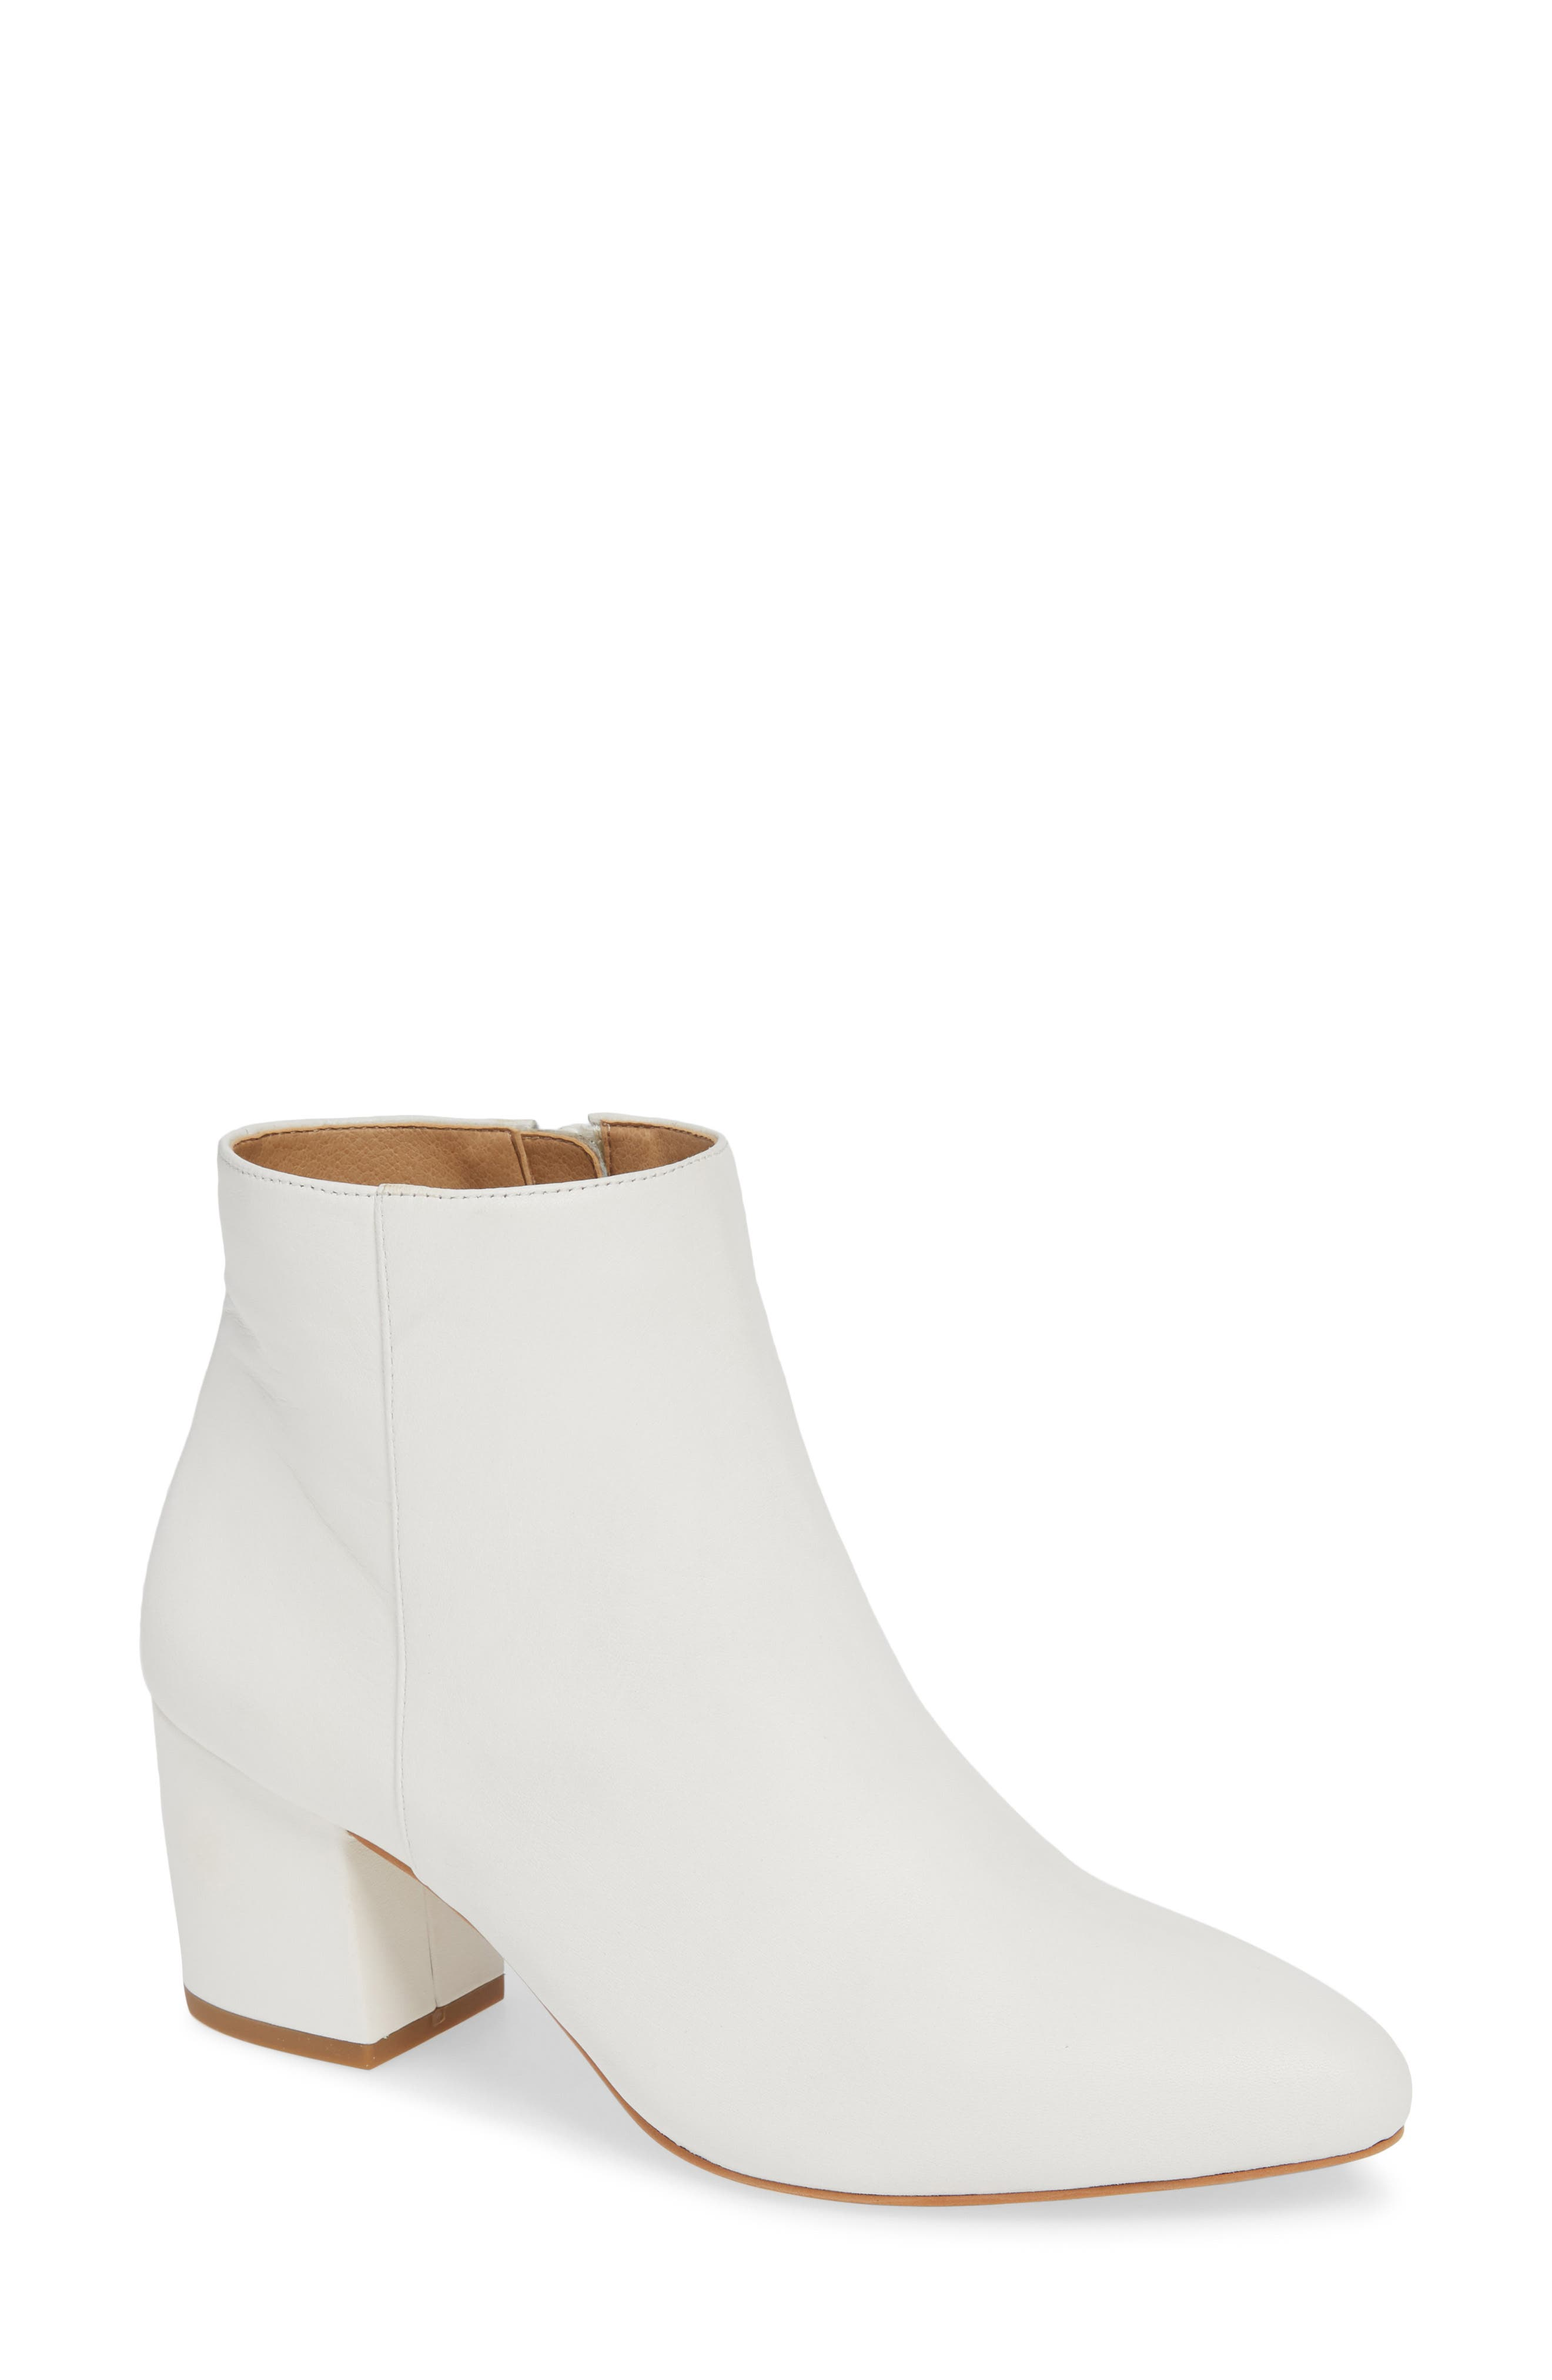 NIC+ZOE Amorie Bootie, Main, color, WHITE LEATHER